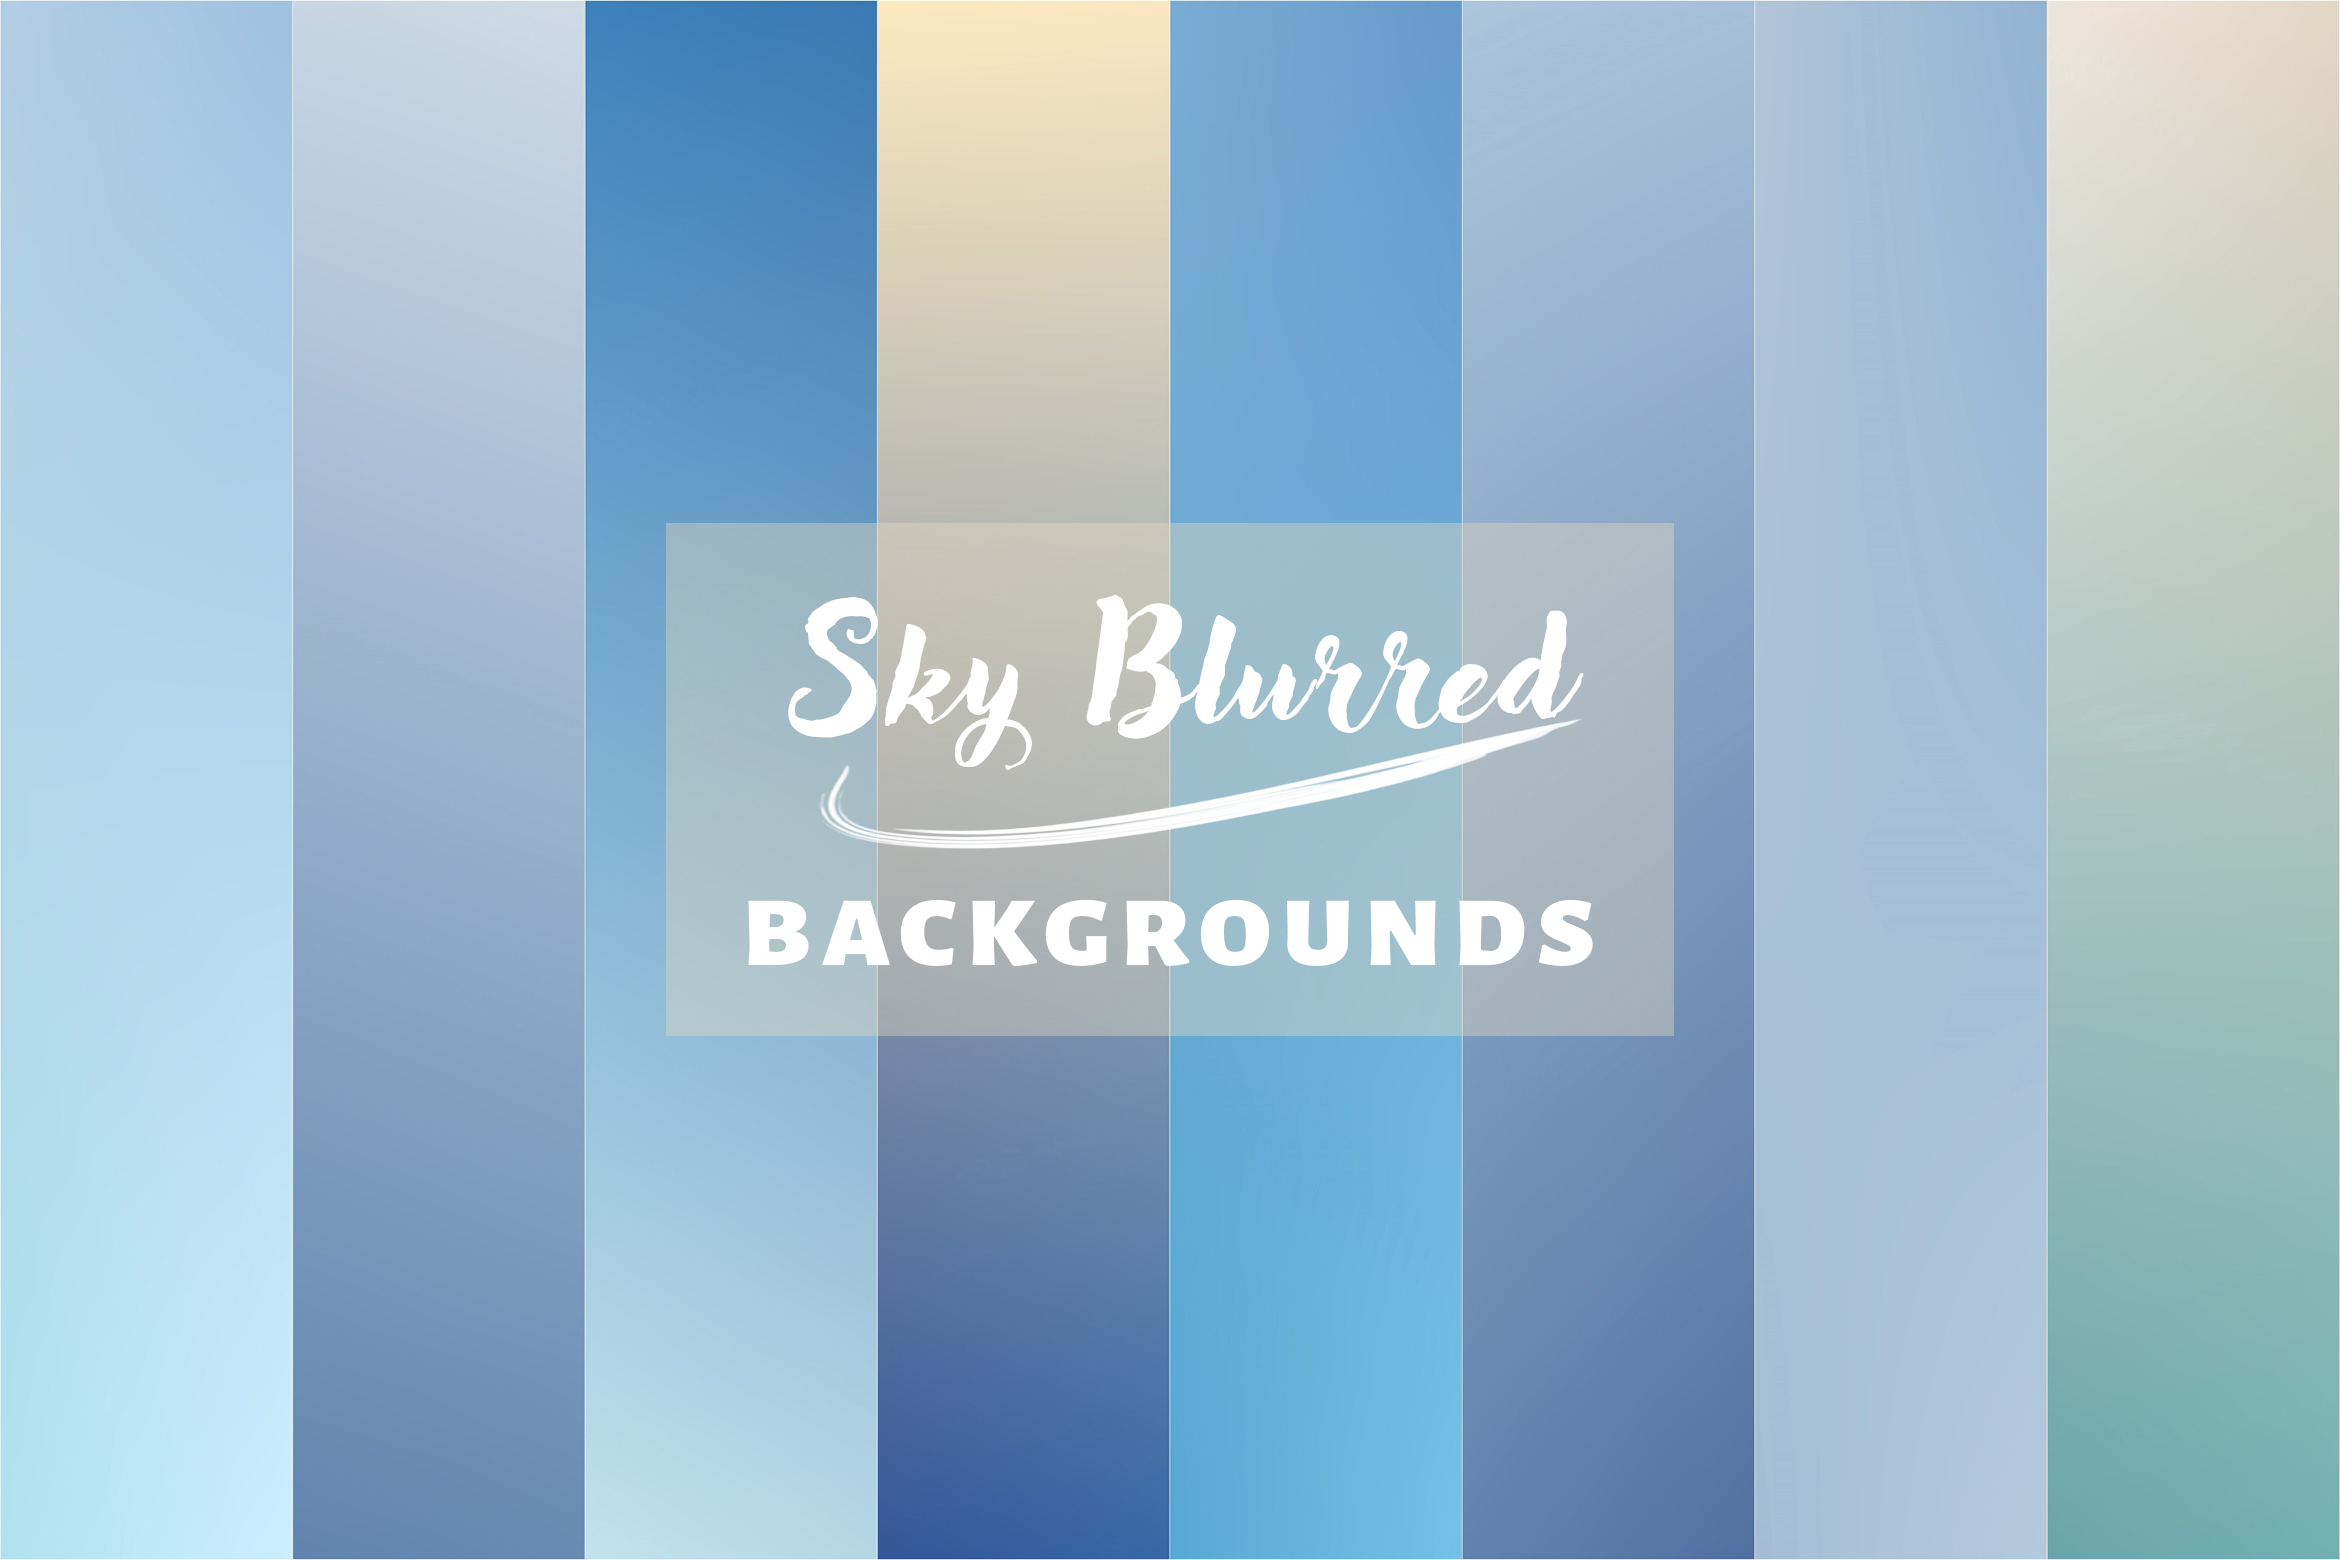 20 Sky Blurred Backgrounds JPG in High Resolution example image 4